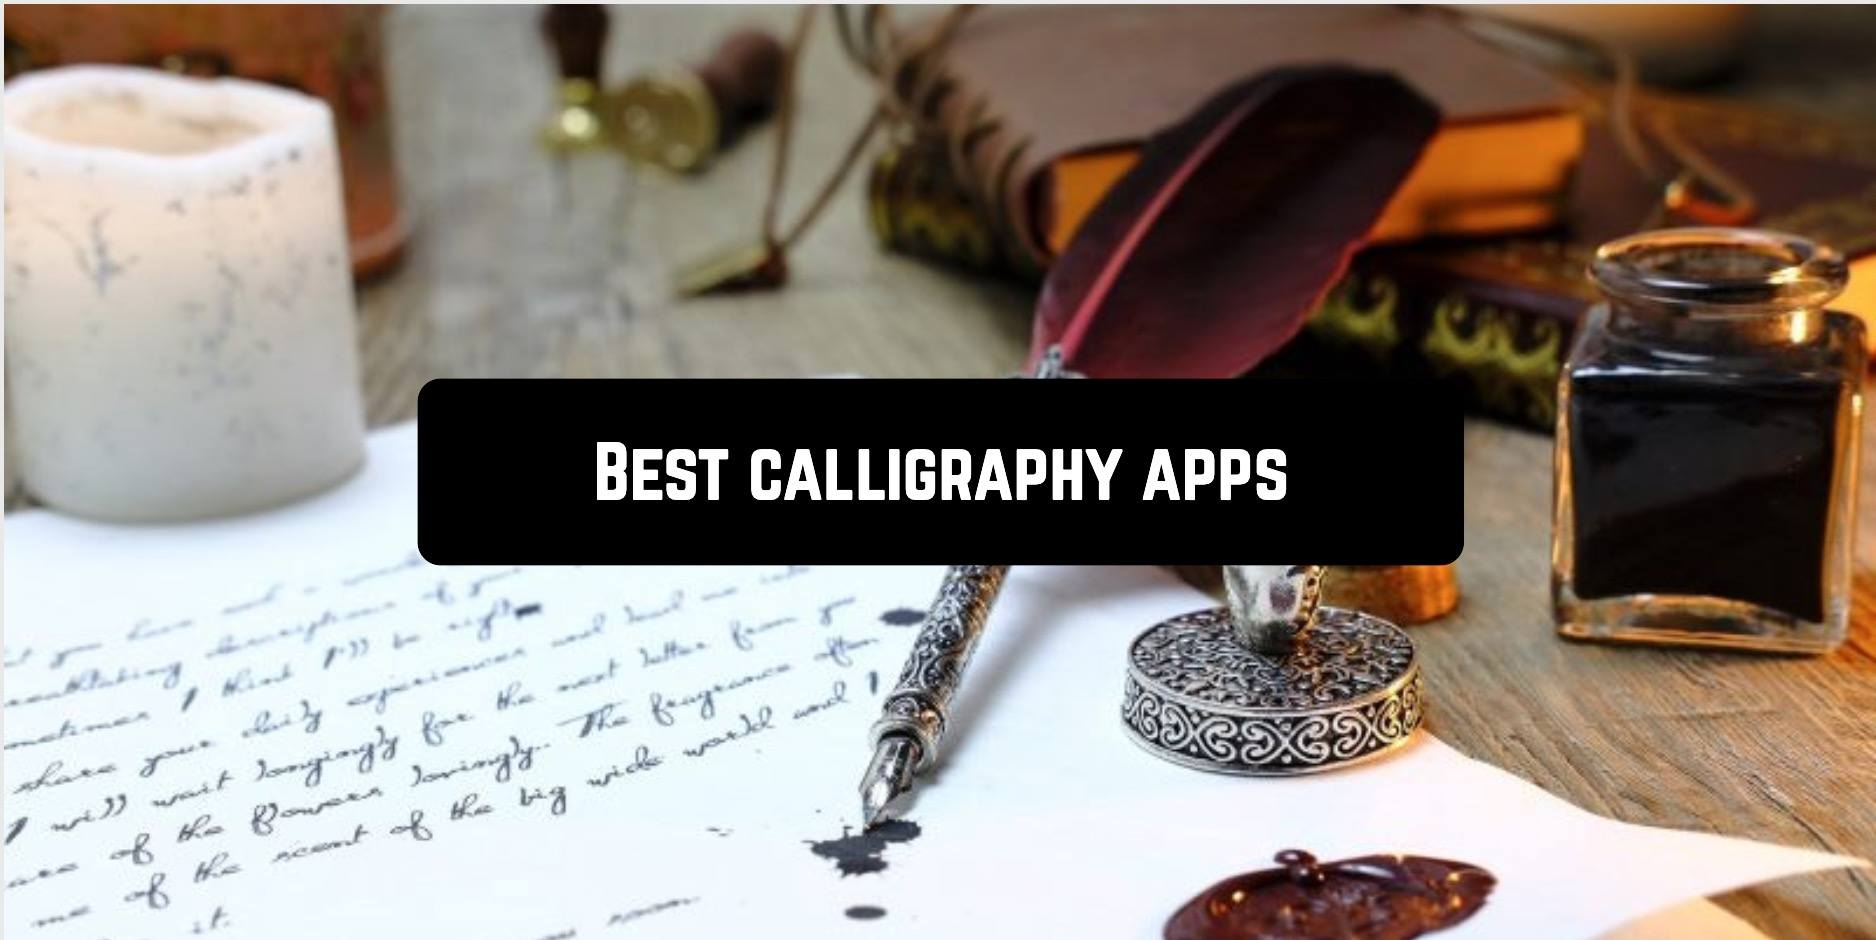 Best calligraphy apps